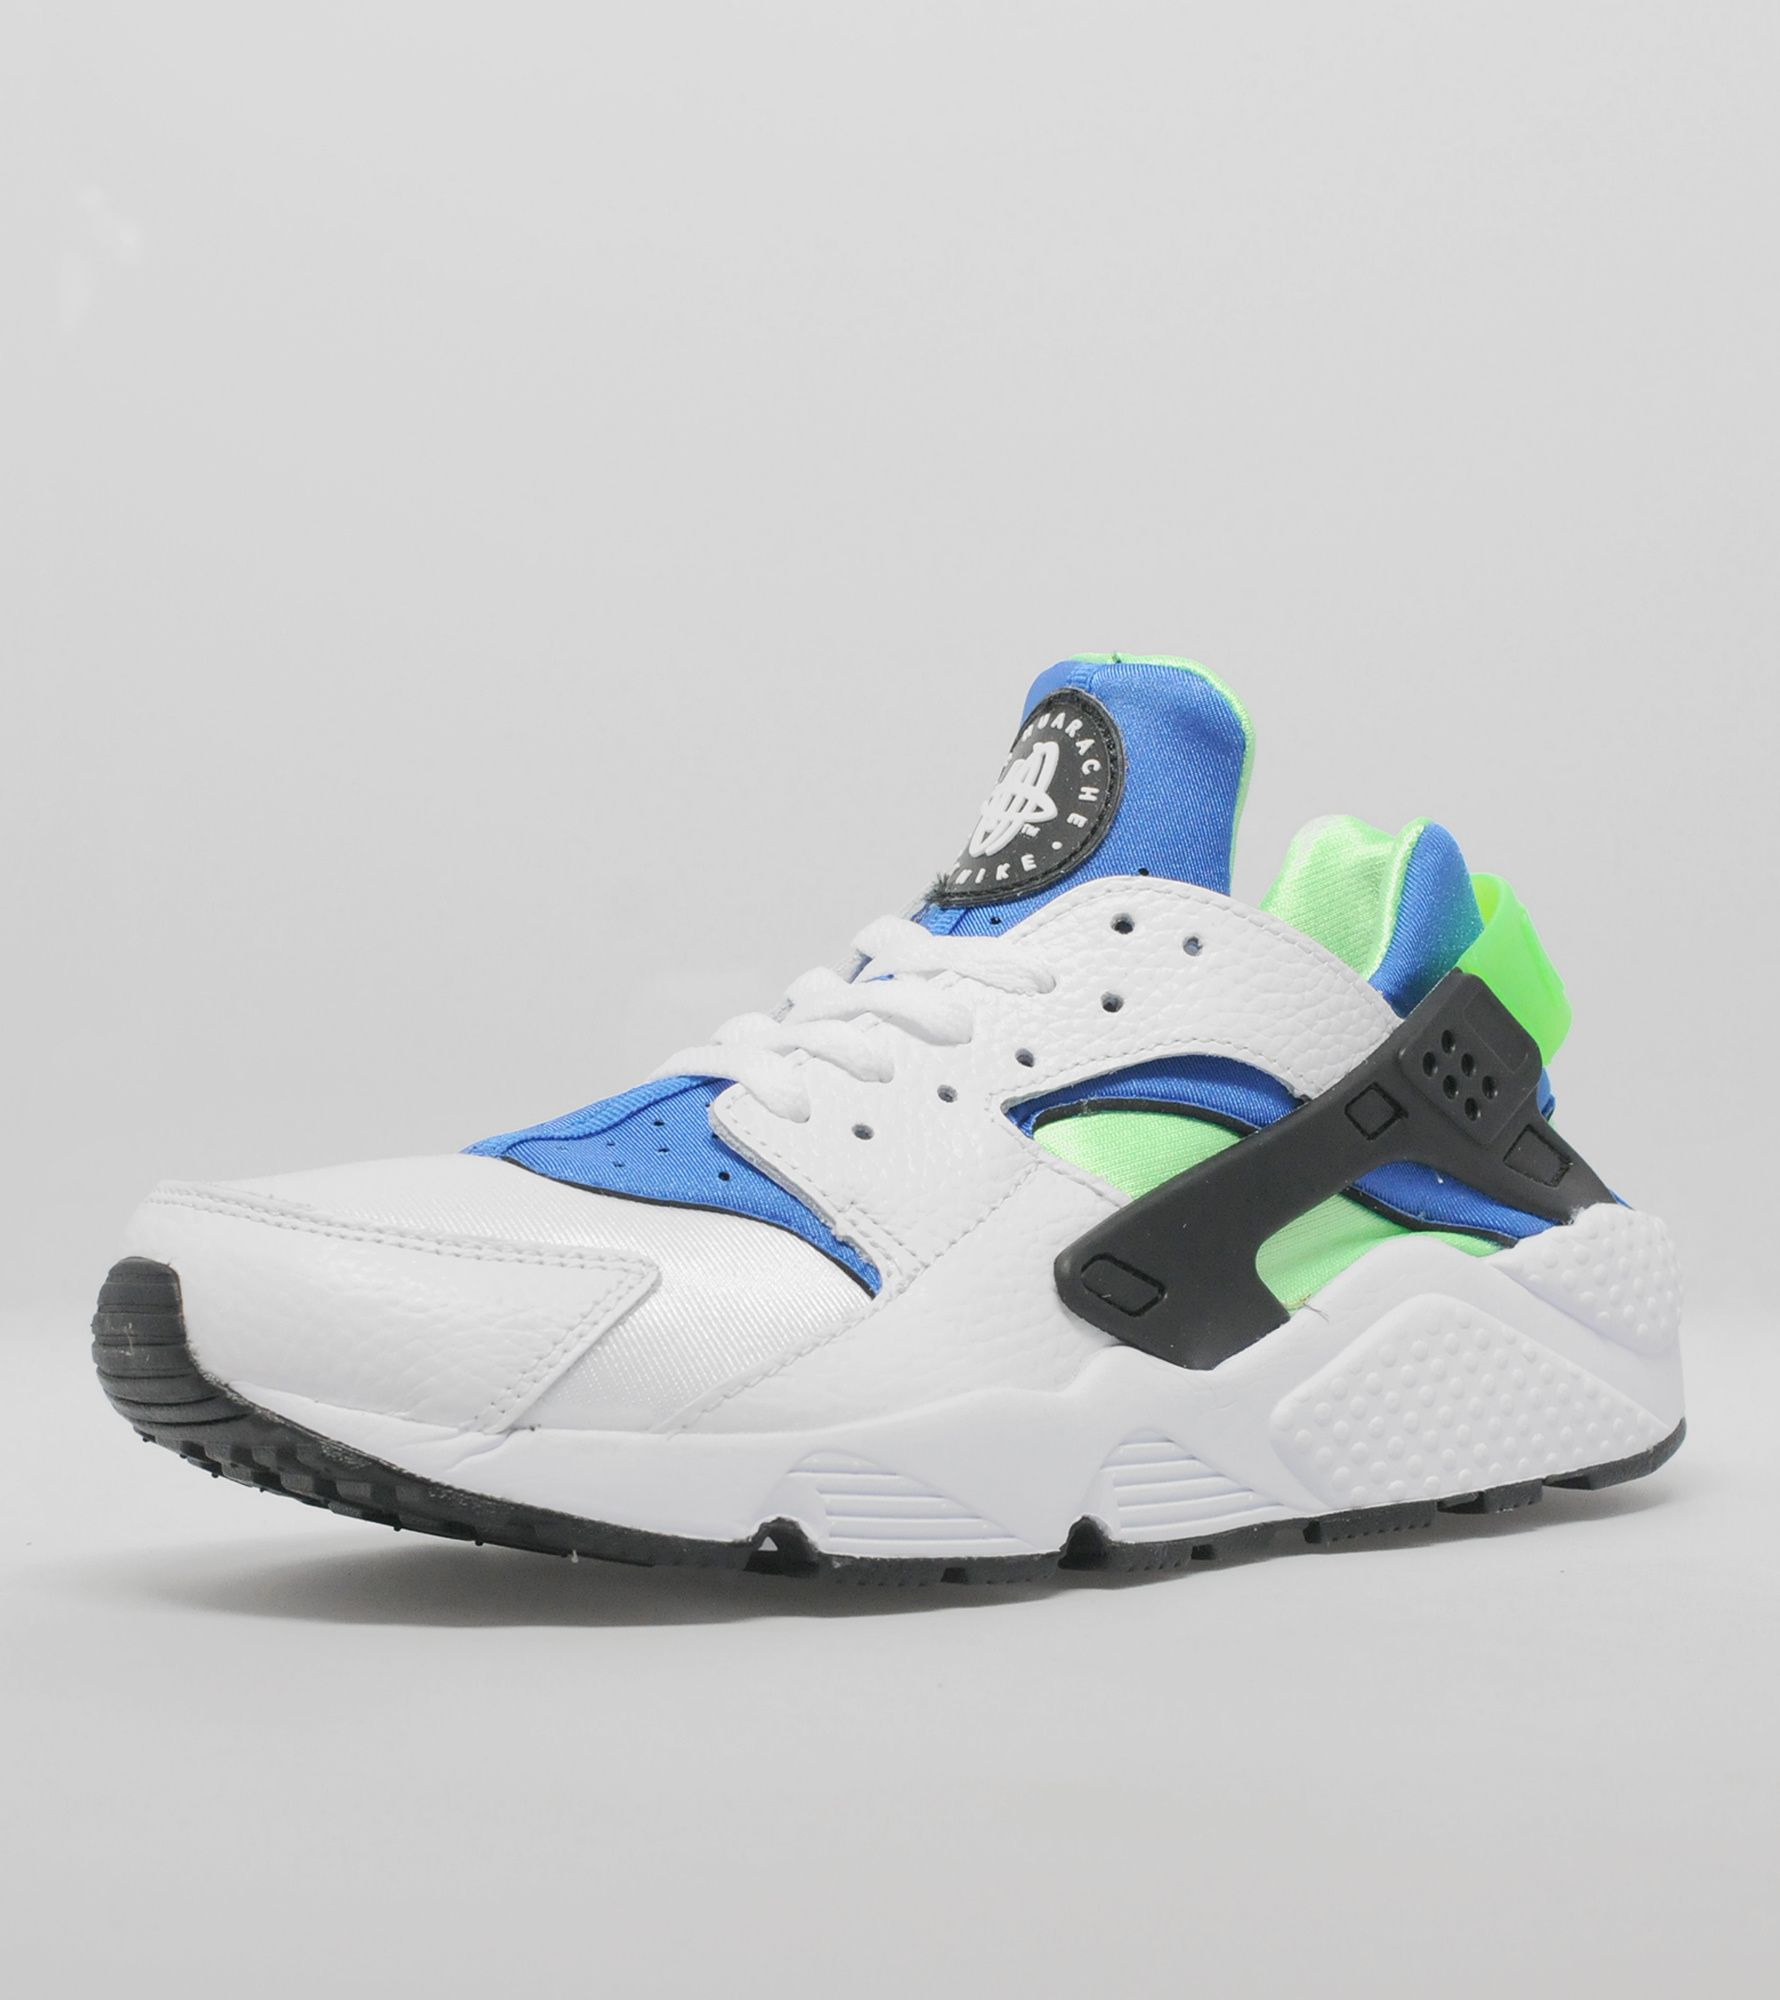 134bbcda8cc5 Nike Air Huarache  Scream Green